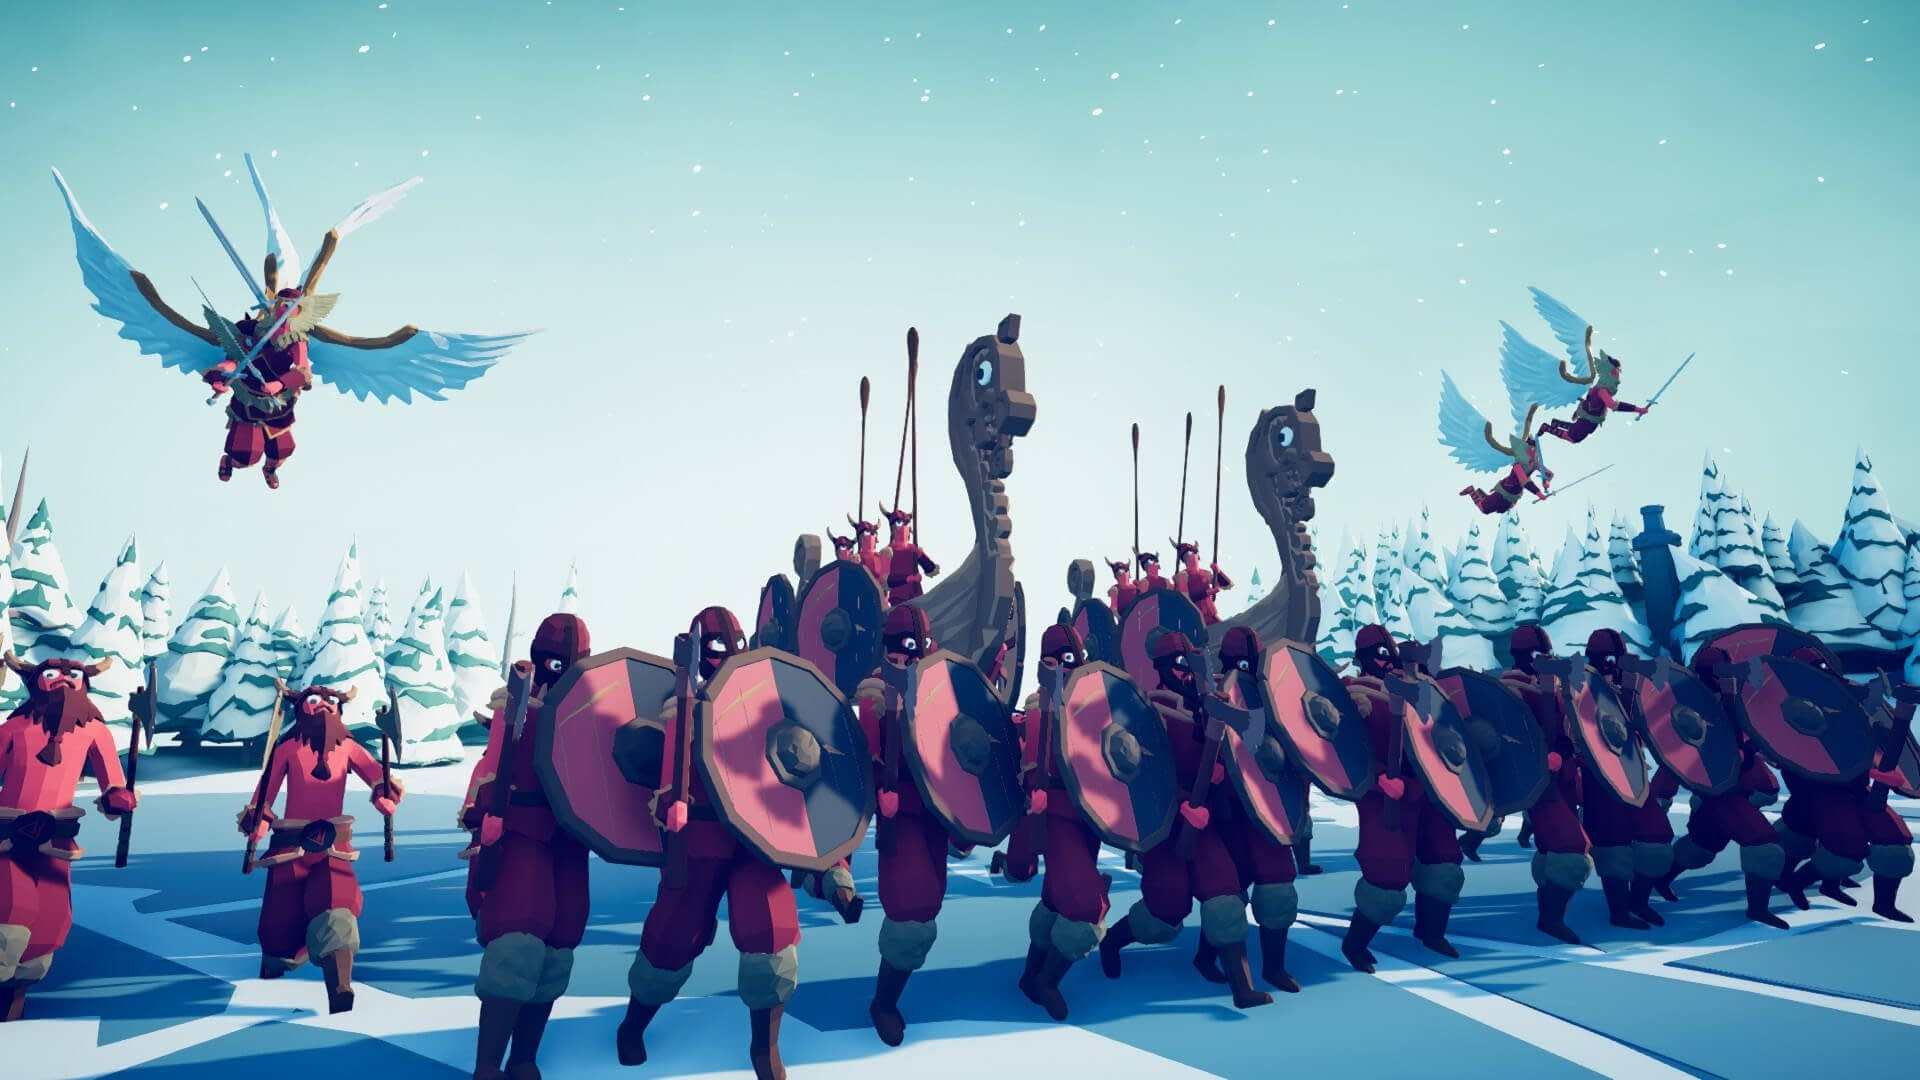 New Games on Steam: Totally Accurate Battle Simulator